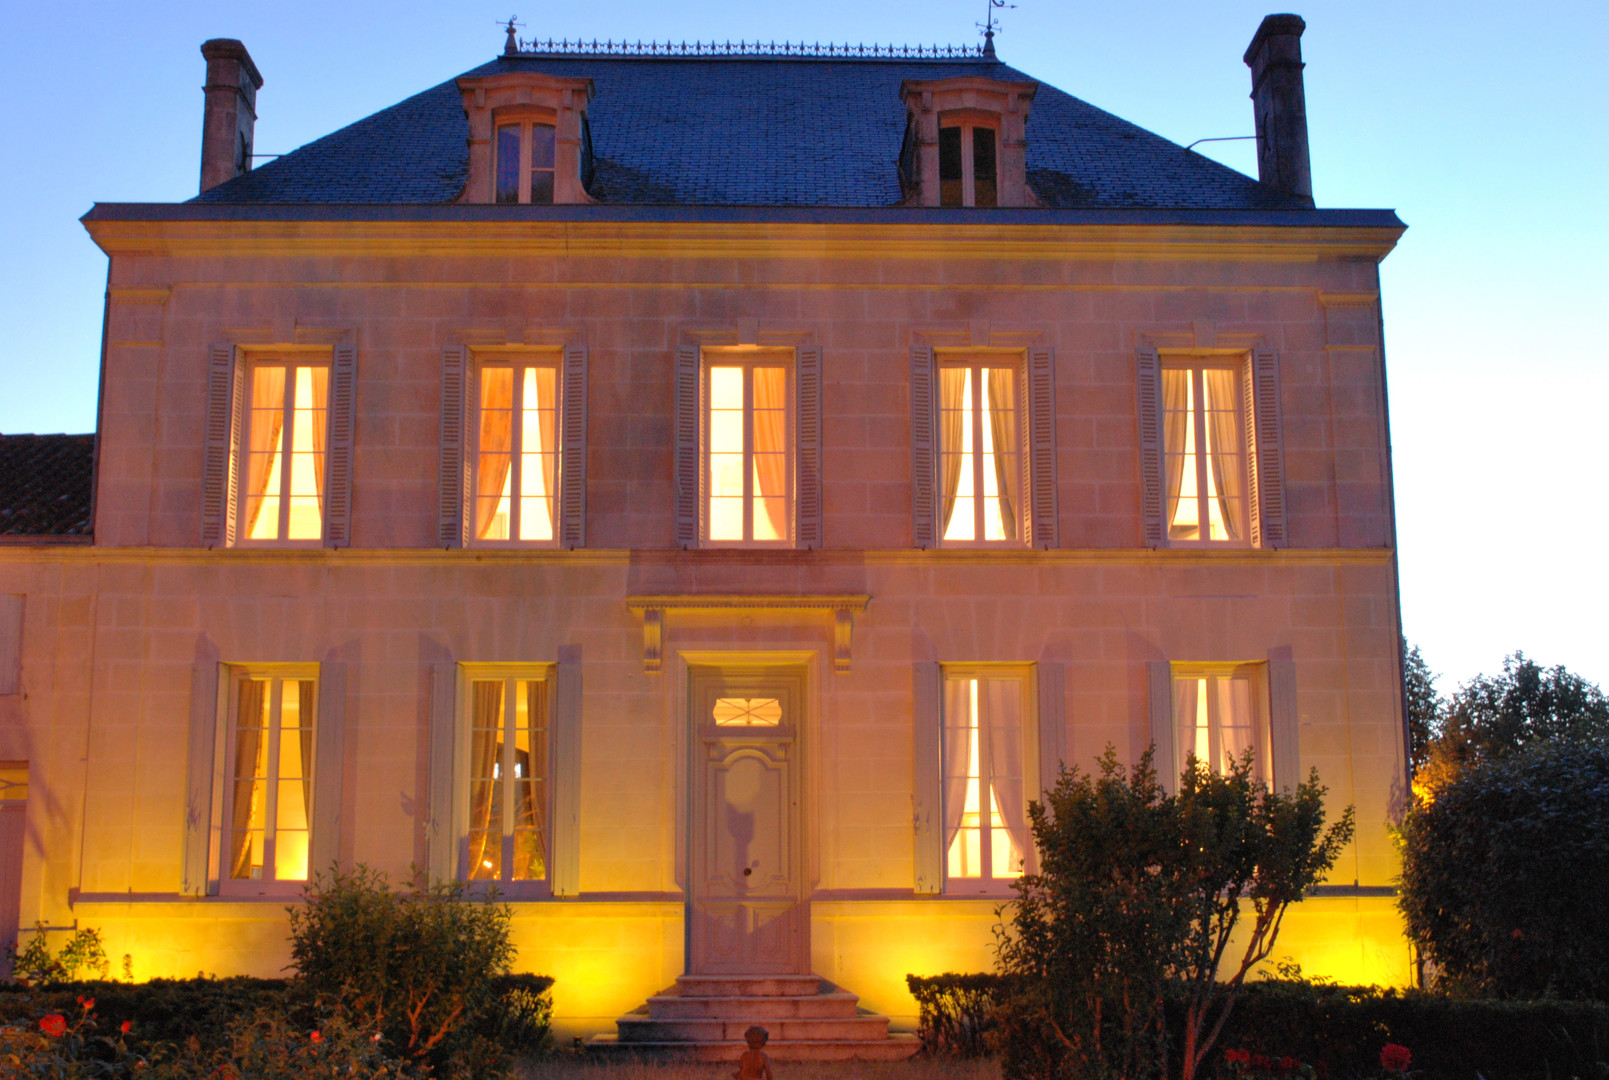 Manor facade in the evening.